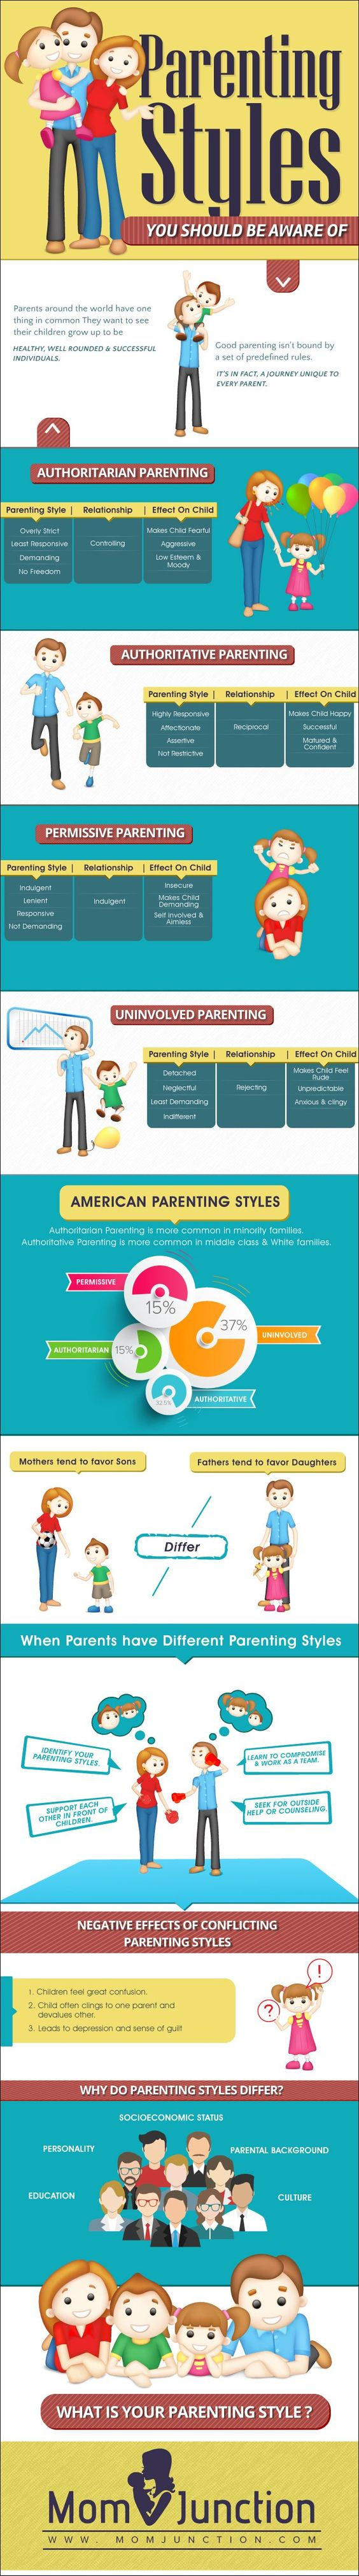 parenting styles in different cultures essay In psychology today, there are four major recognized parenting styles: authoritative, neglectful, permissive, and authoritarian each one carries different.